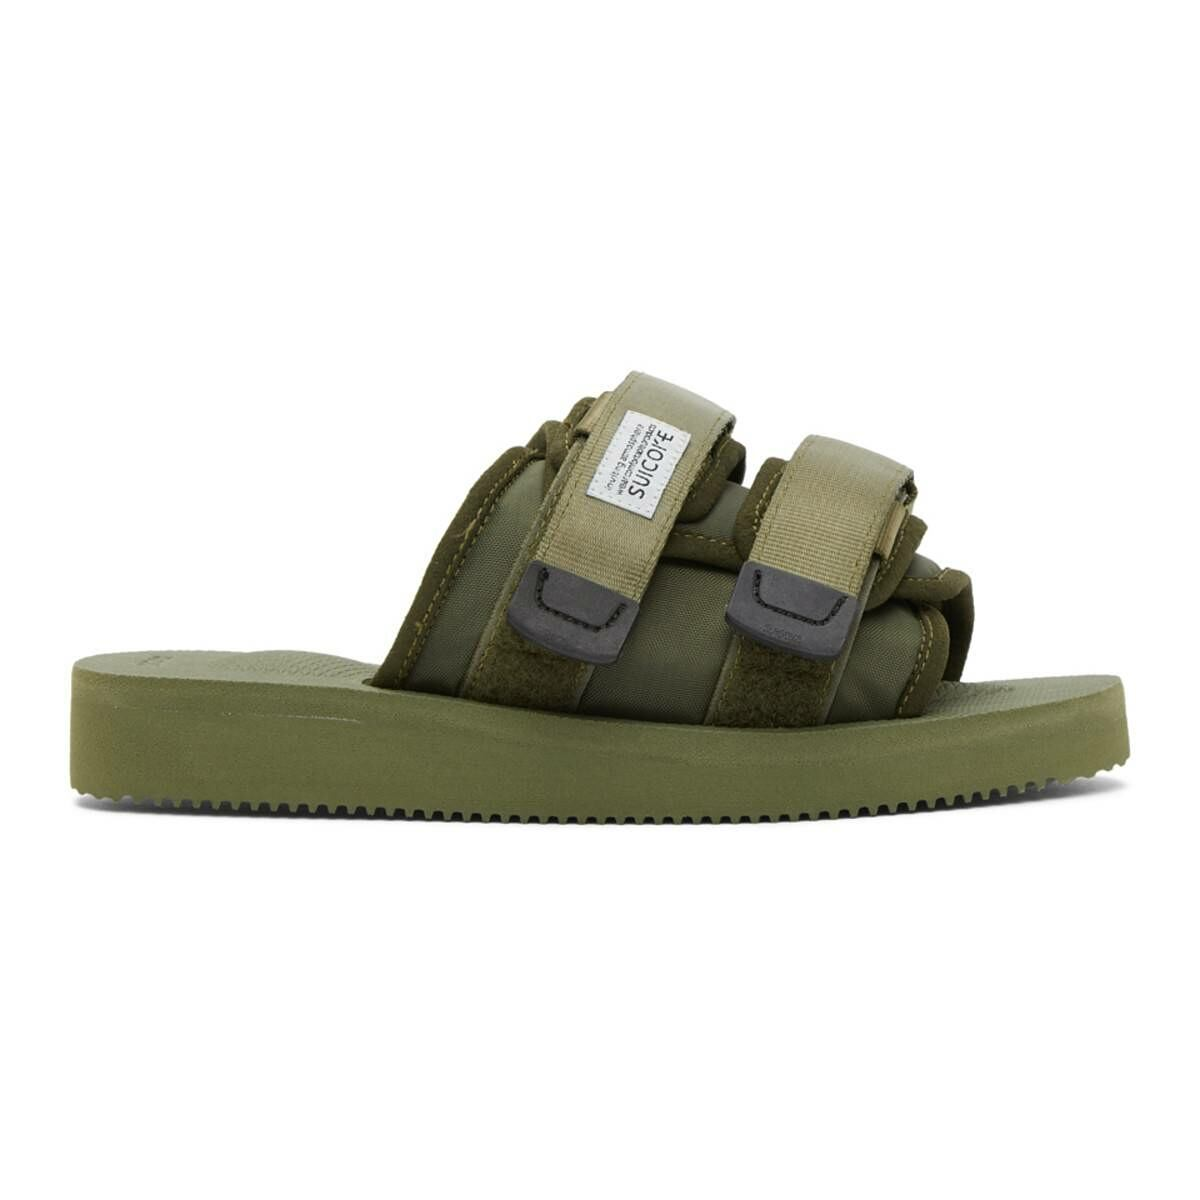 Suicoke Khaki MOTO-Cab Sandals Ssense USA MEN Men SHOES Mens SANDALS